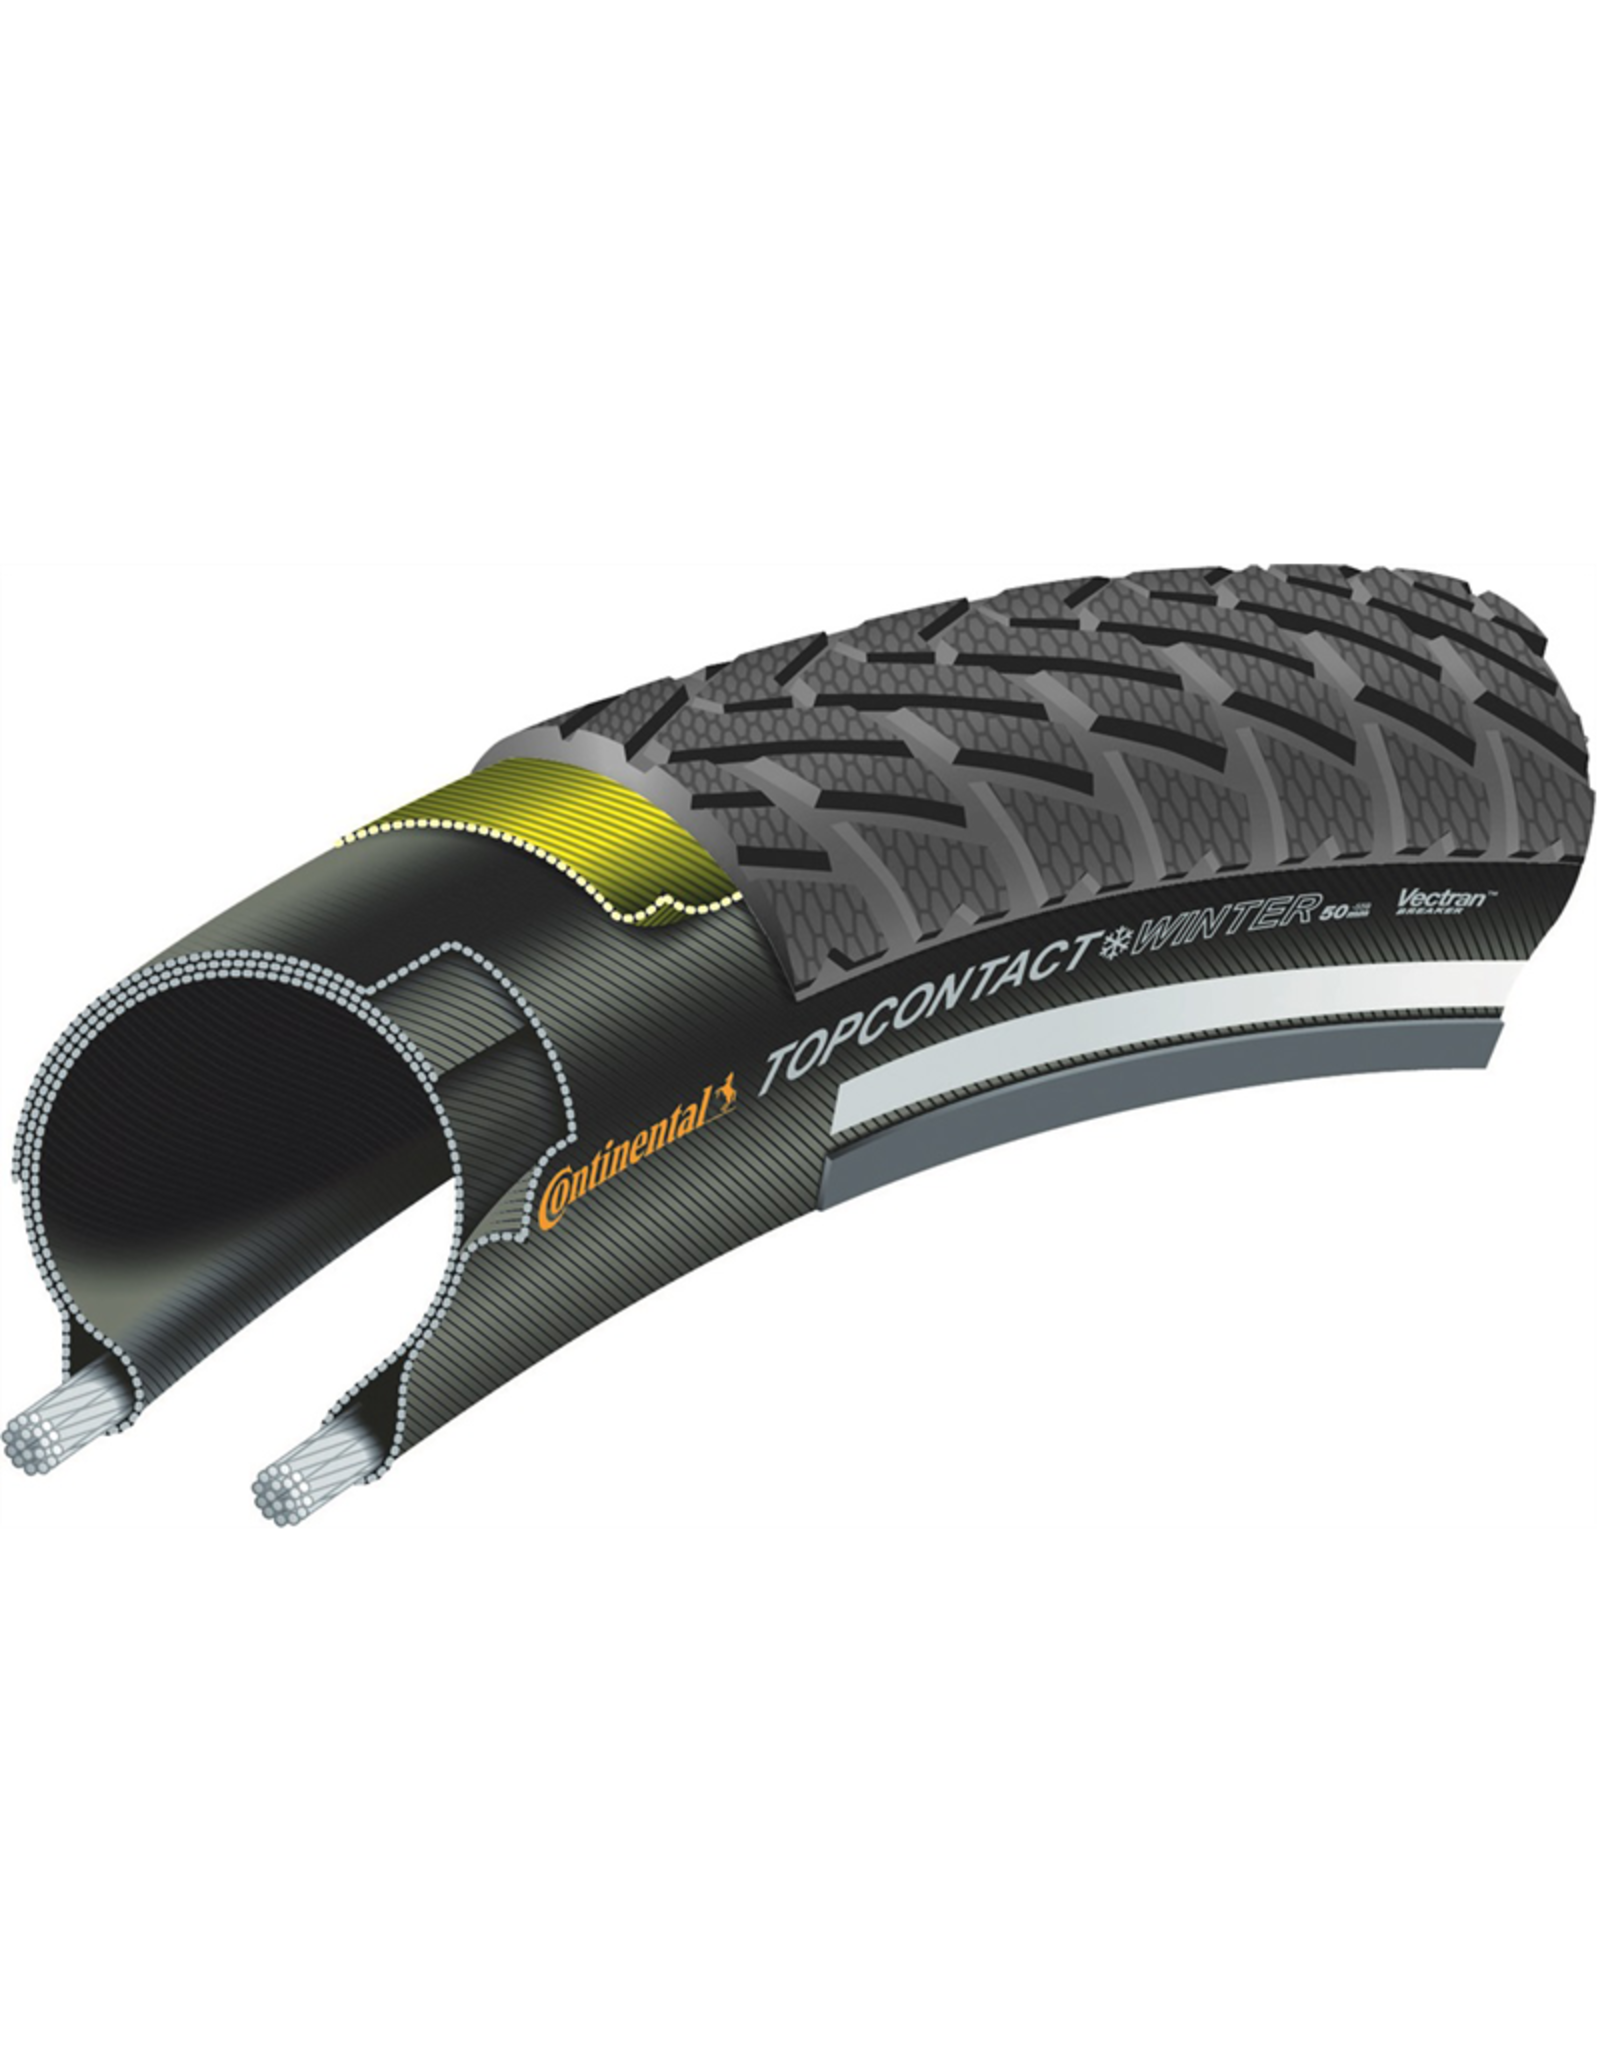 Continental CONTINENTAL TOP CONTACT WINTER II PREM WIRE REFLEX